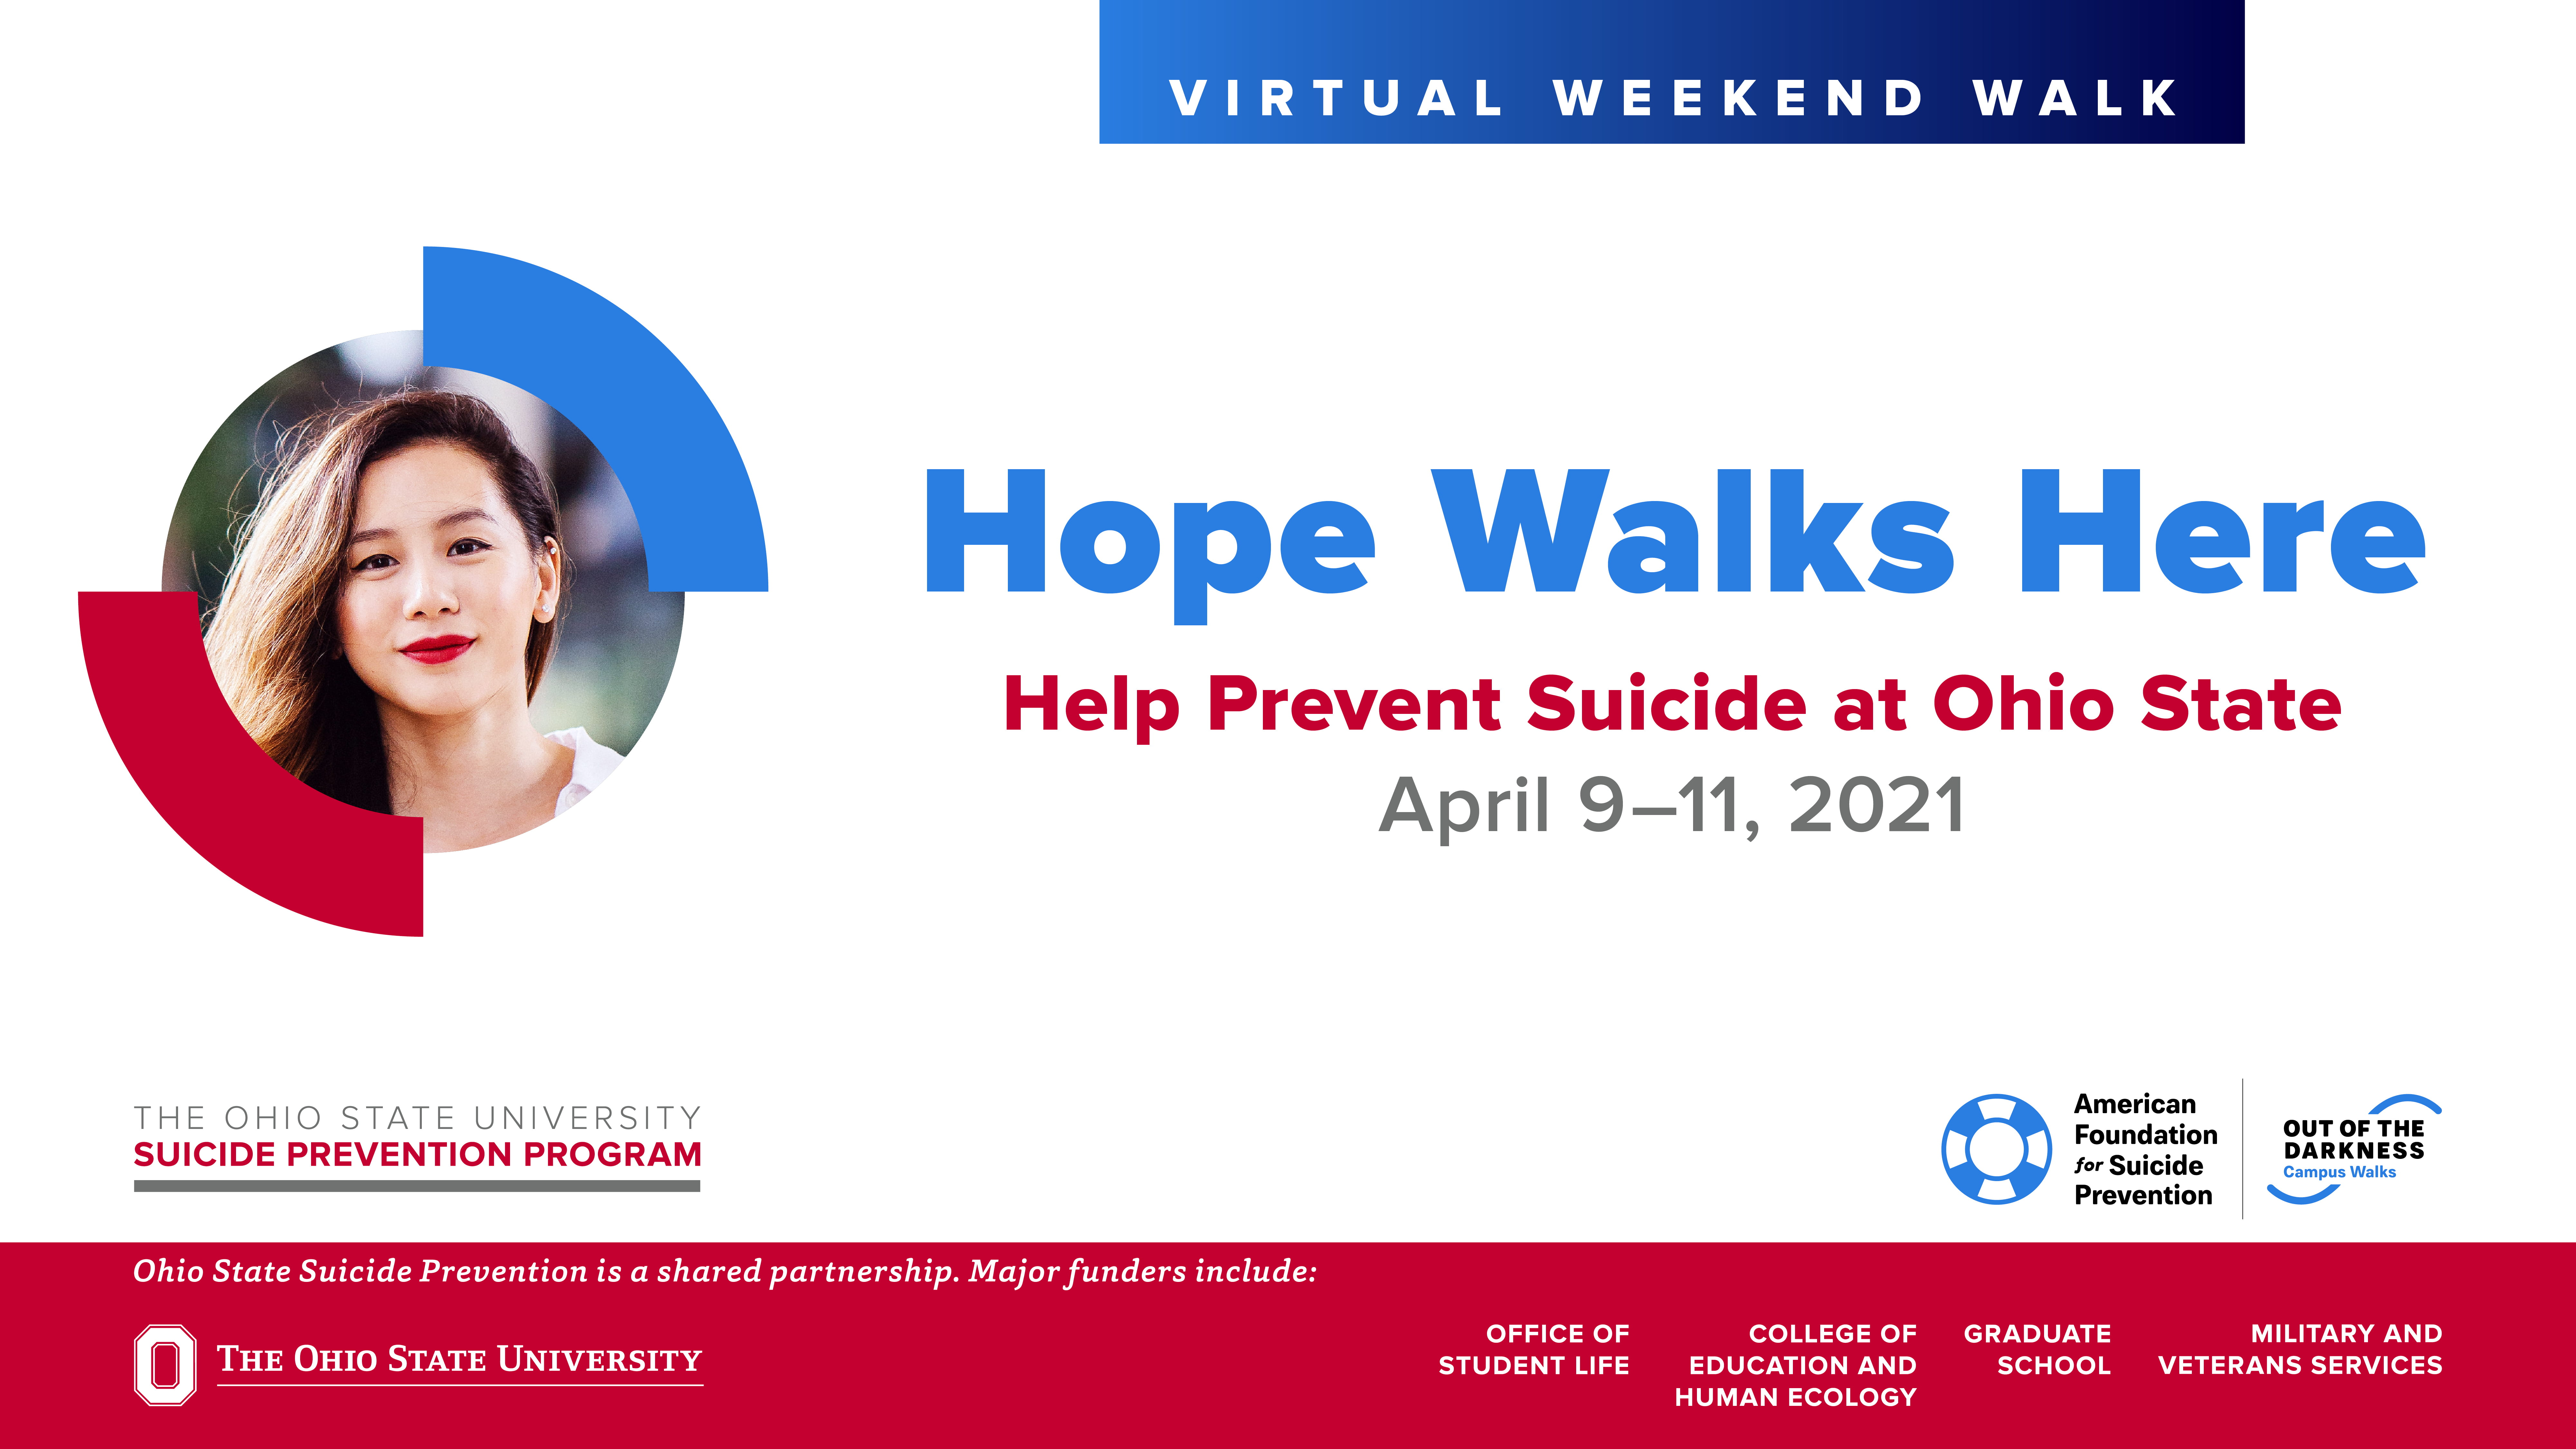 Out of the Darkness Campus Walk for suicide prevention begins Friday